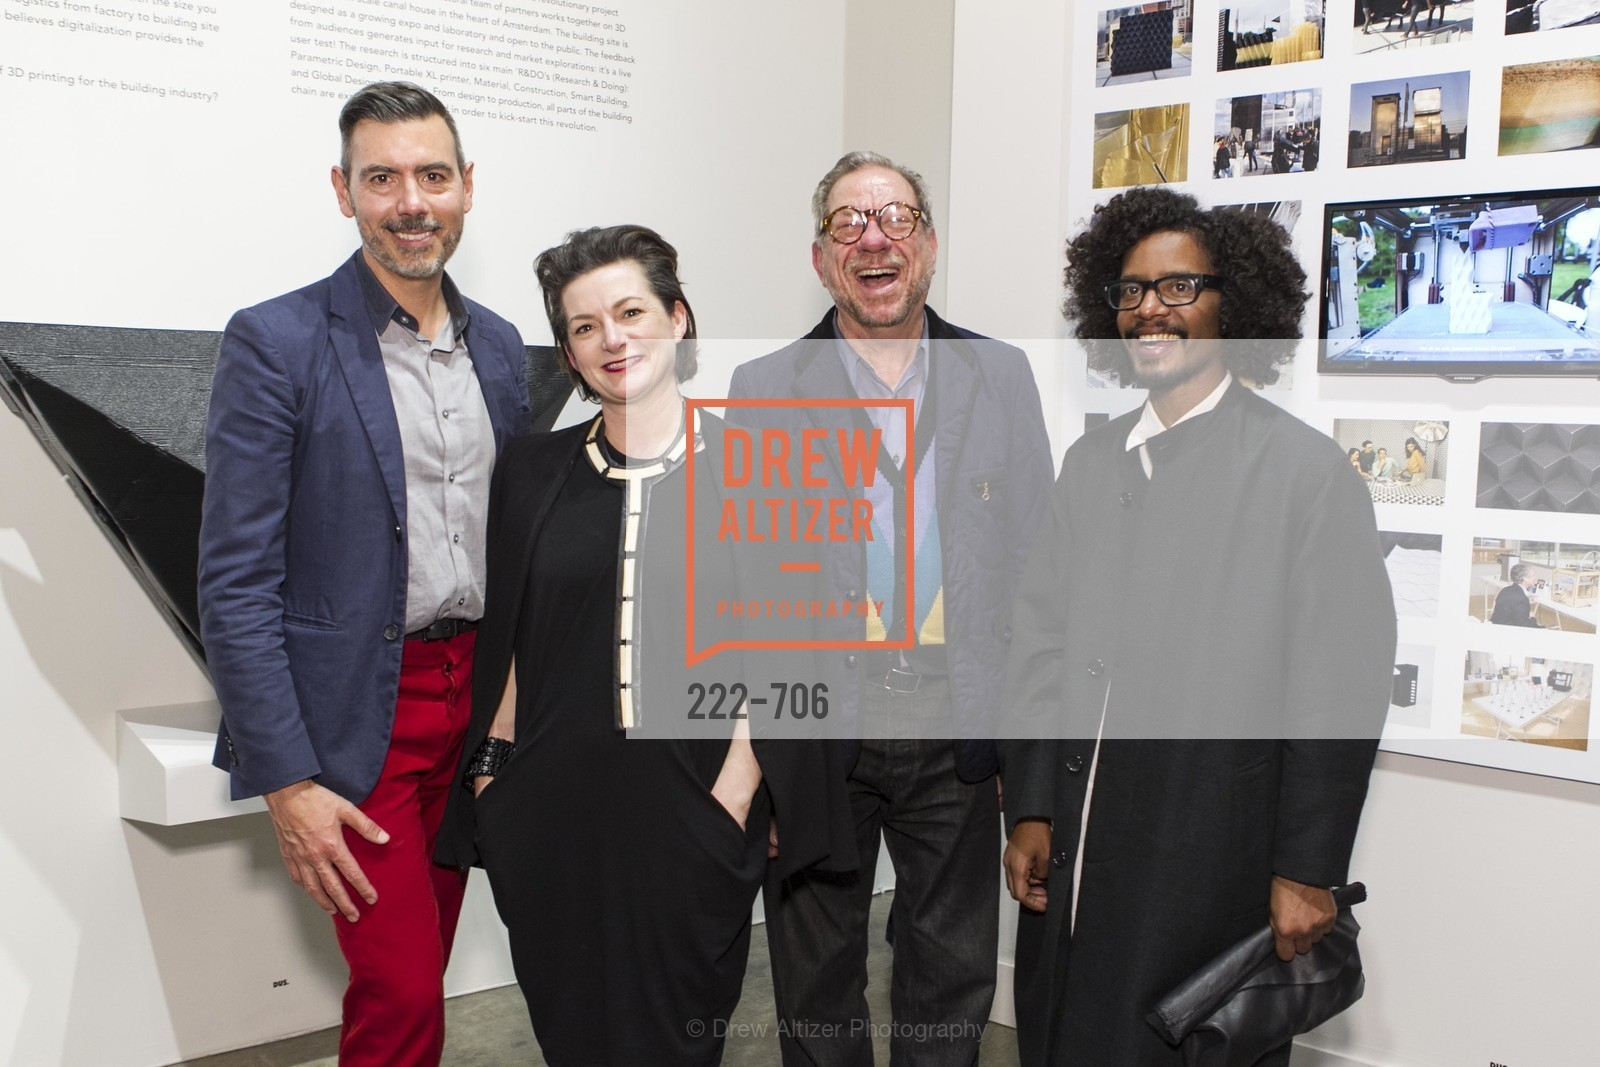 John Macy, Alisa Carroll, Gary Hutton, Yani Alexi Dominguez, Exhibit Opening at the MUSEUM OF CRAFT AND DESIGN - Hands Off: New Dutch Design at the Confluence of Technology & Craft, US, May 8th, 2015,Drew Altizer, Drew Altizer Photography, full-service agency, private events, San Francisco photographer, photographer california